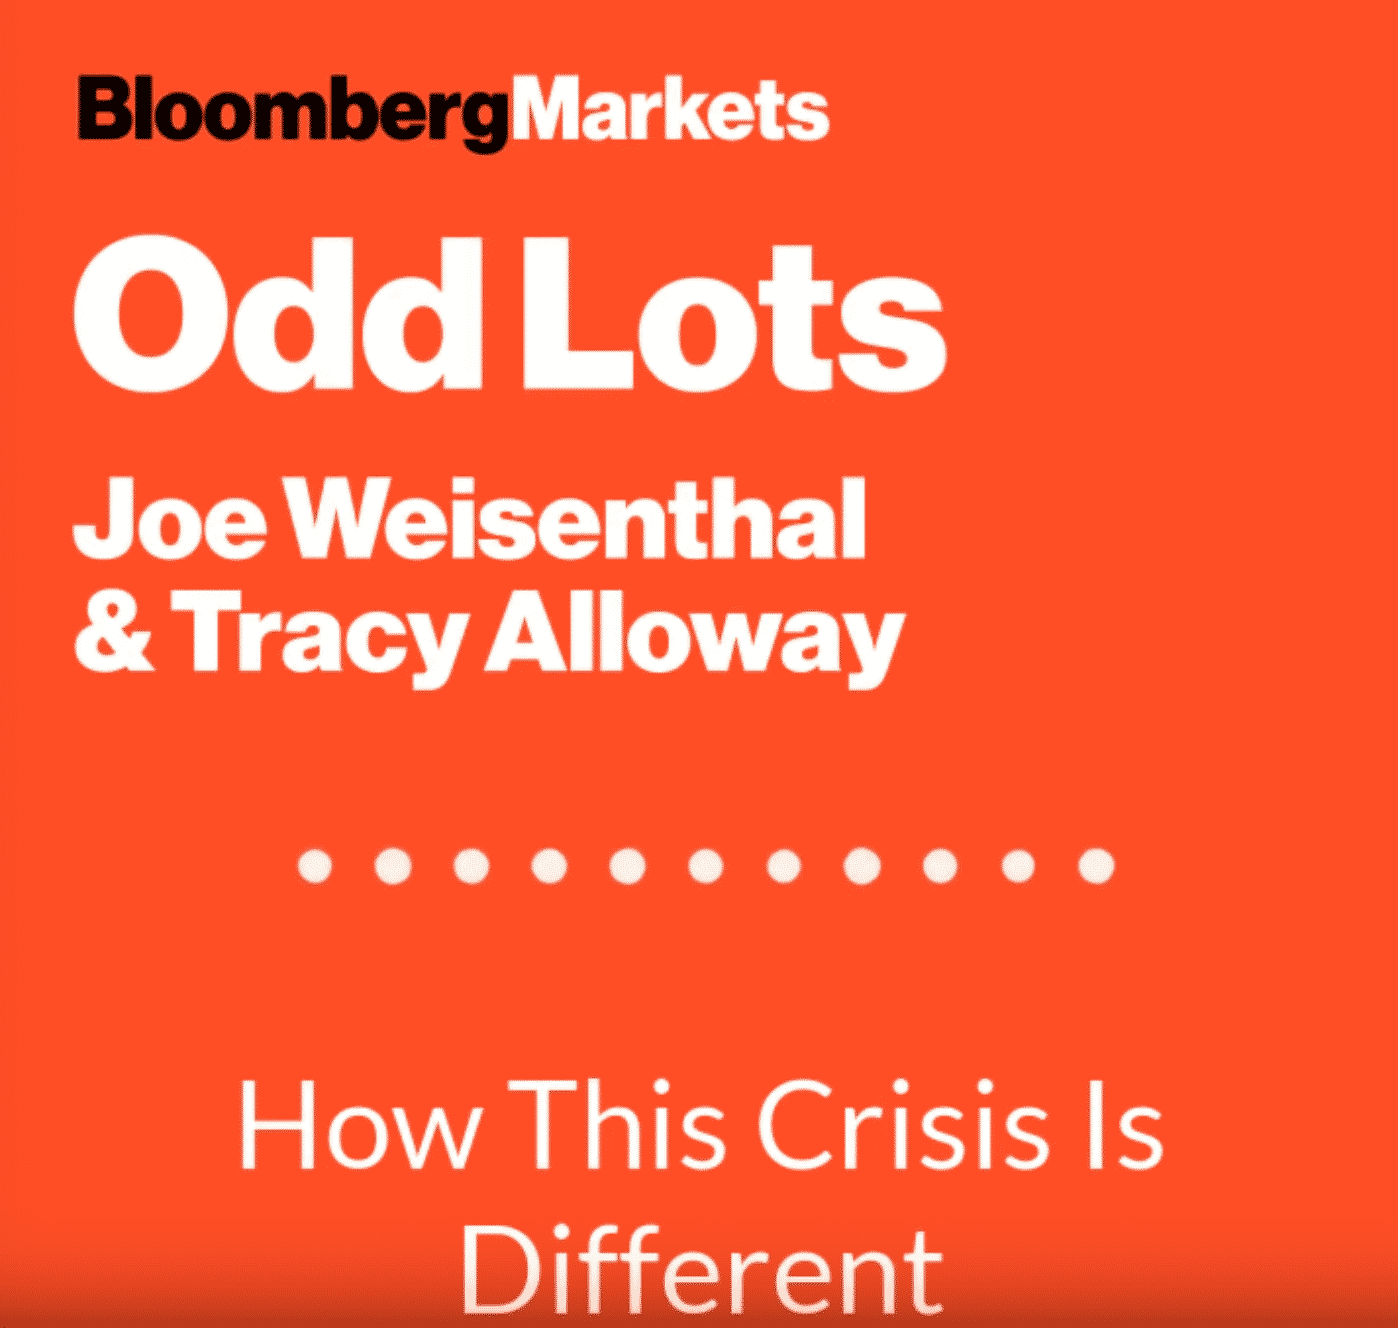 Title page of the Odd Lots Podcast with Bloomberg's Joe Weisenthal and Tracy Alloway